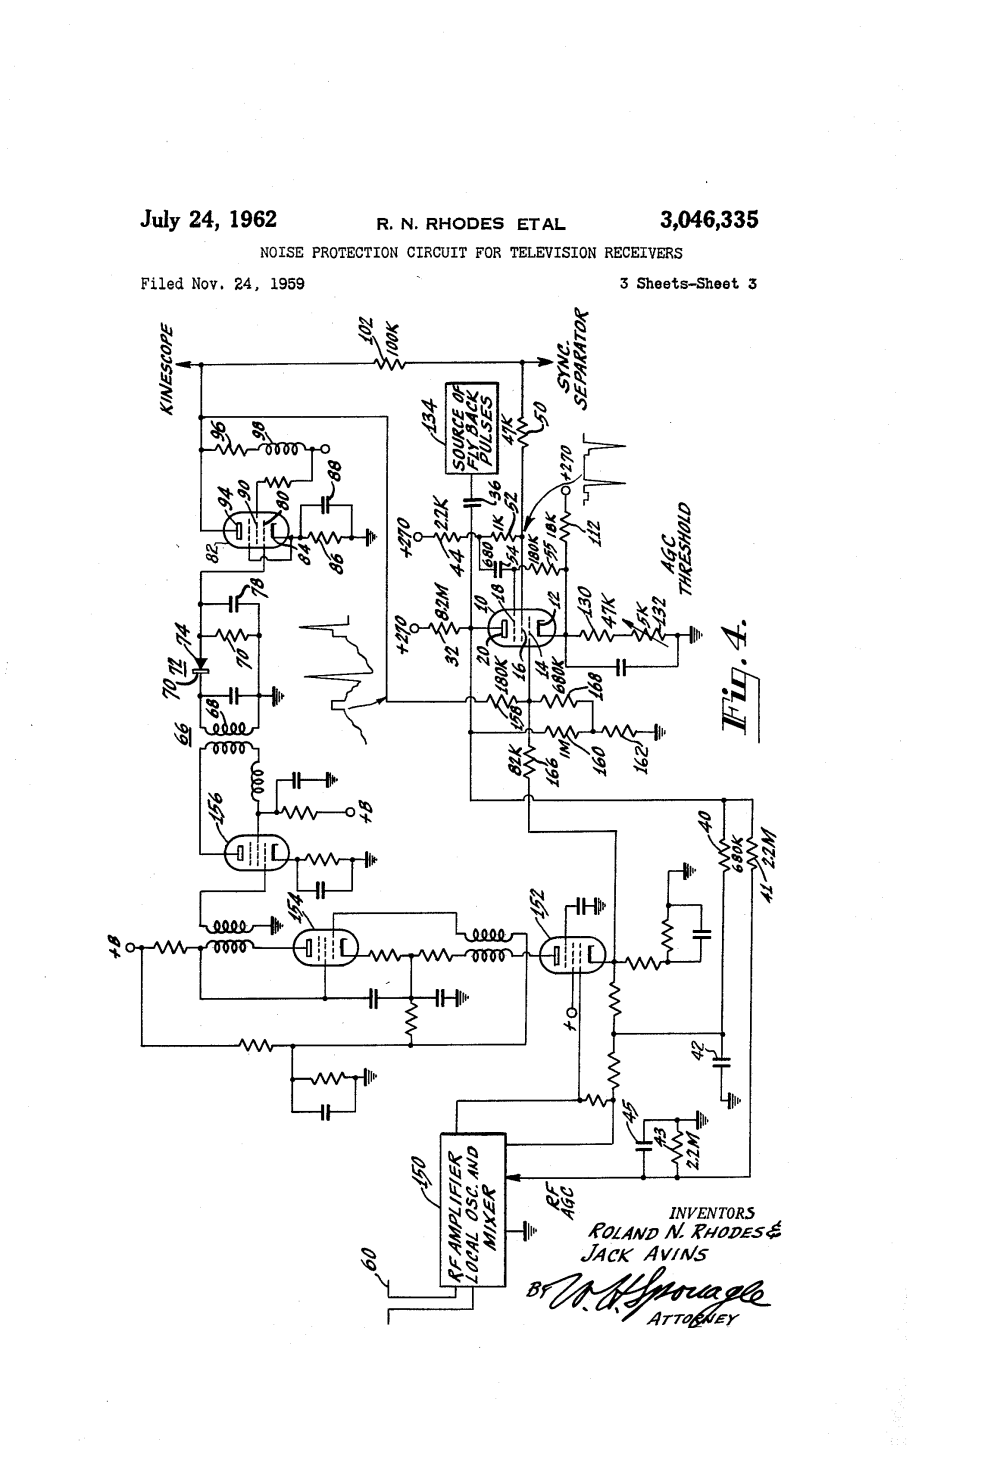 medium resolution of patent us3046335 noise protection circuit for television receivers figure fo2 2 amplifiermixer schematic diagram sheet 2 of 2